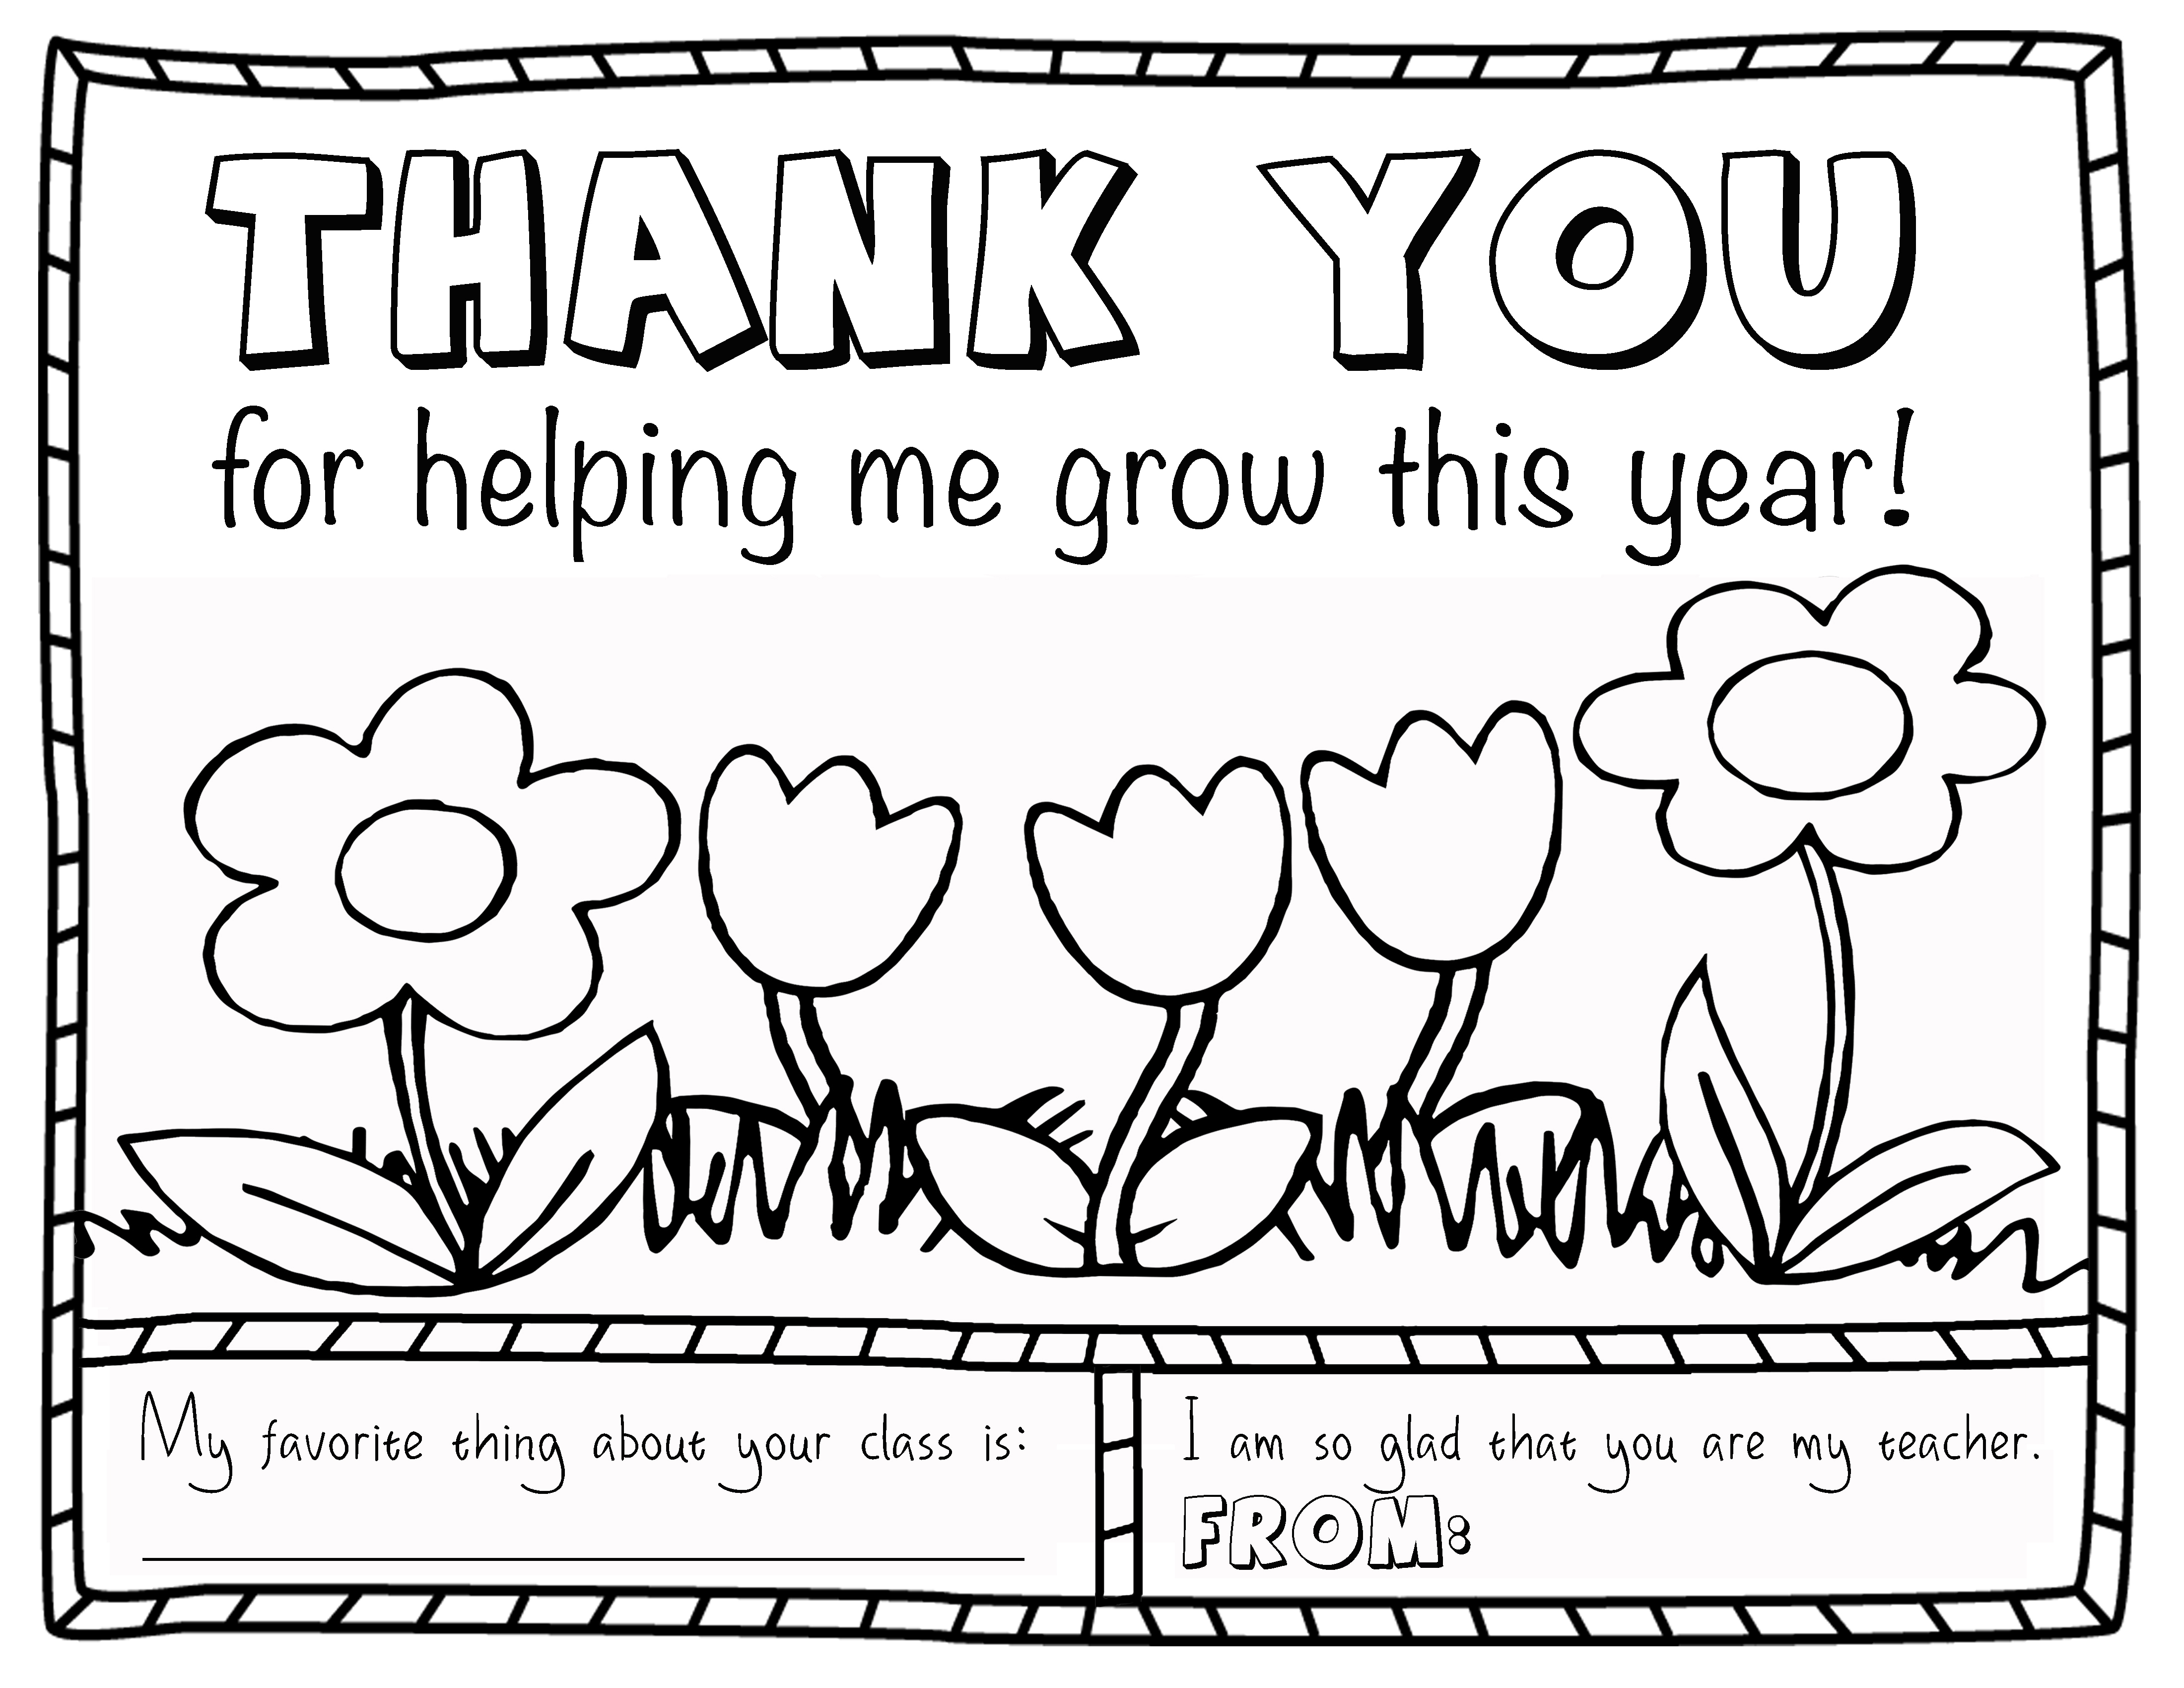 Teacher Appreciation Coloring Page | Projects In Parenting - Free Printable Teacher Appreciation Cards To Color